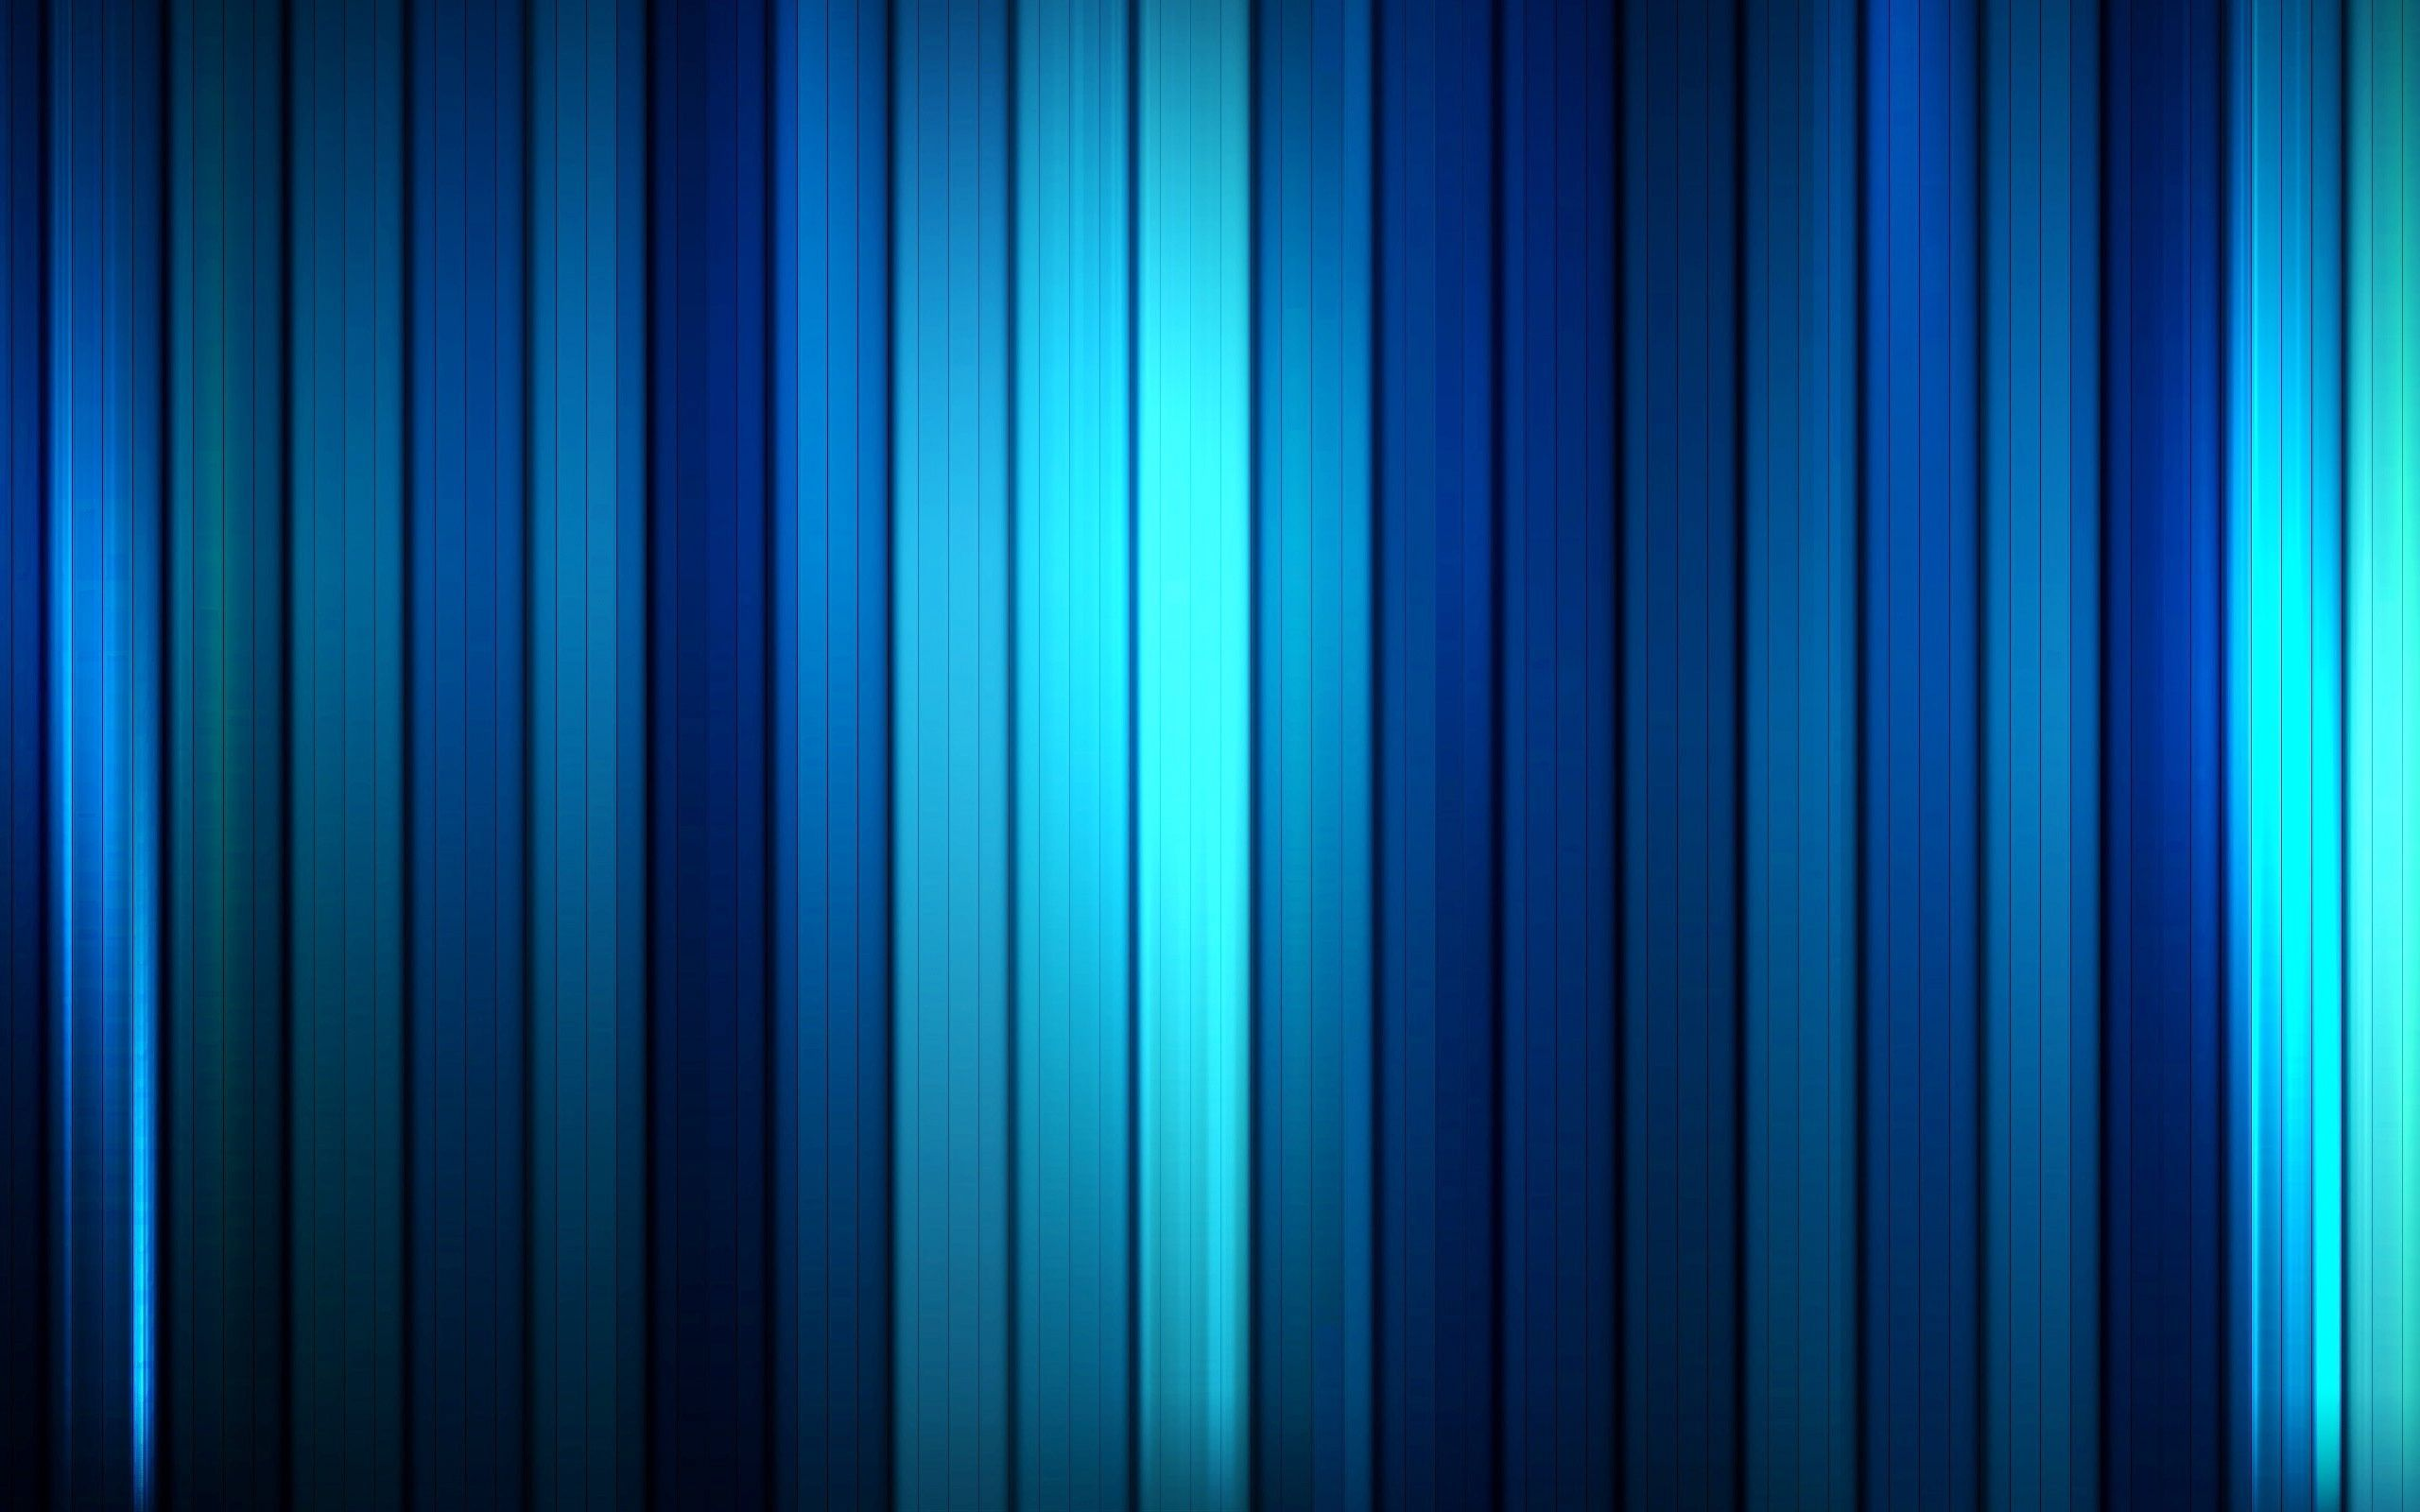 Blue Striped Wallpaper: Blue Stripes Patterns Background Free Stock Photo And